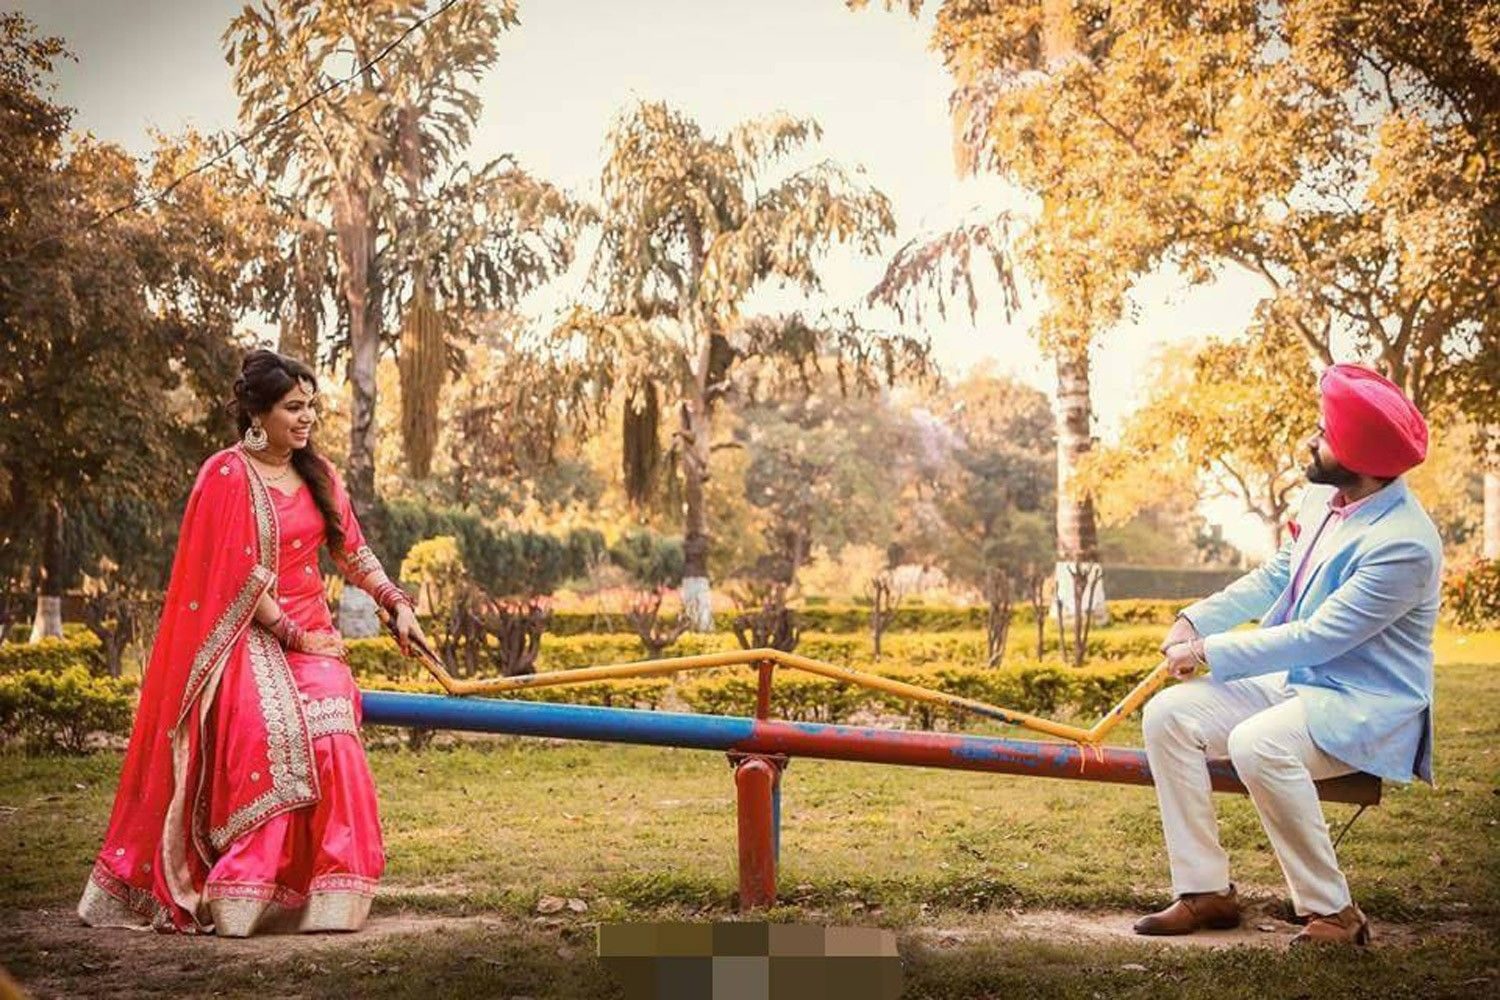 Images Of Punjabi Love Couple Hd Punjabi Couple Wallpapers Hd Pictures One Hd Wallpaper Pictures Regarding Love Couple Images Couples Images Punjabi Couple